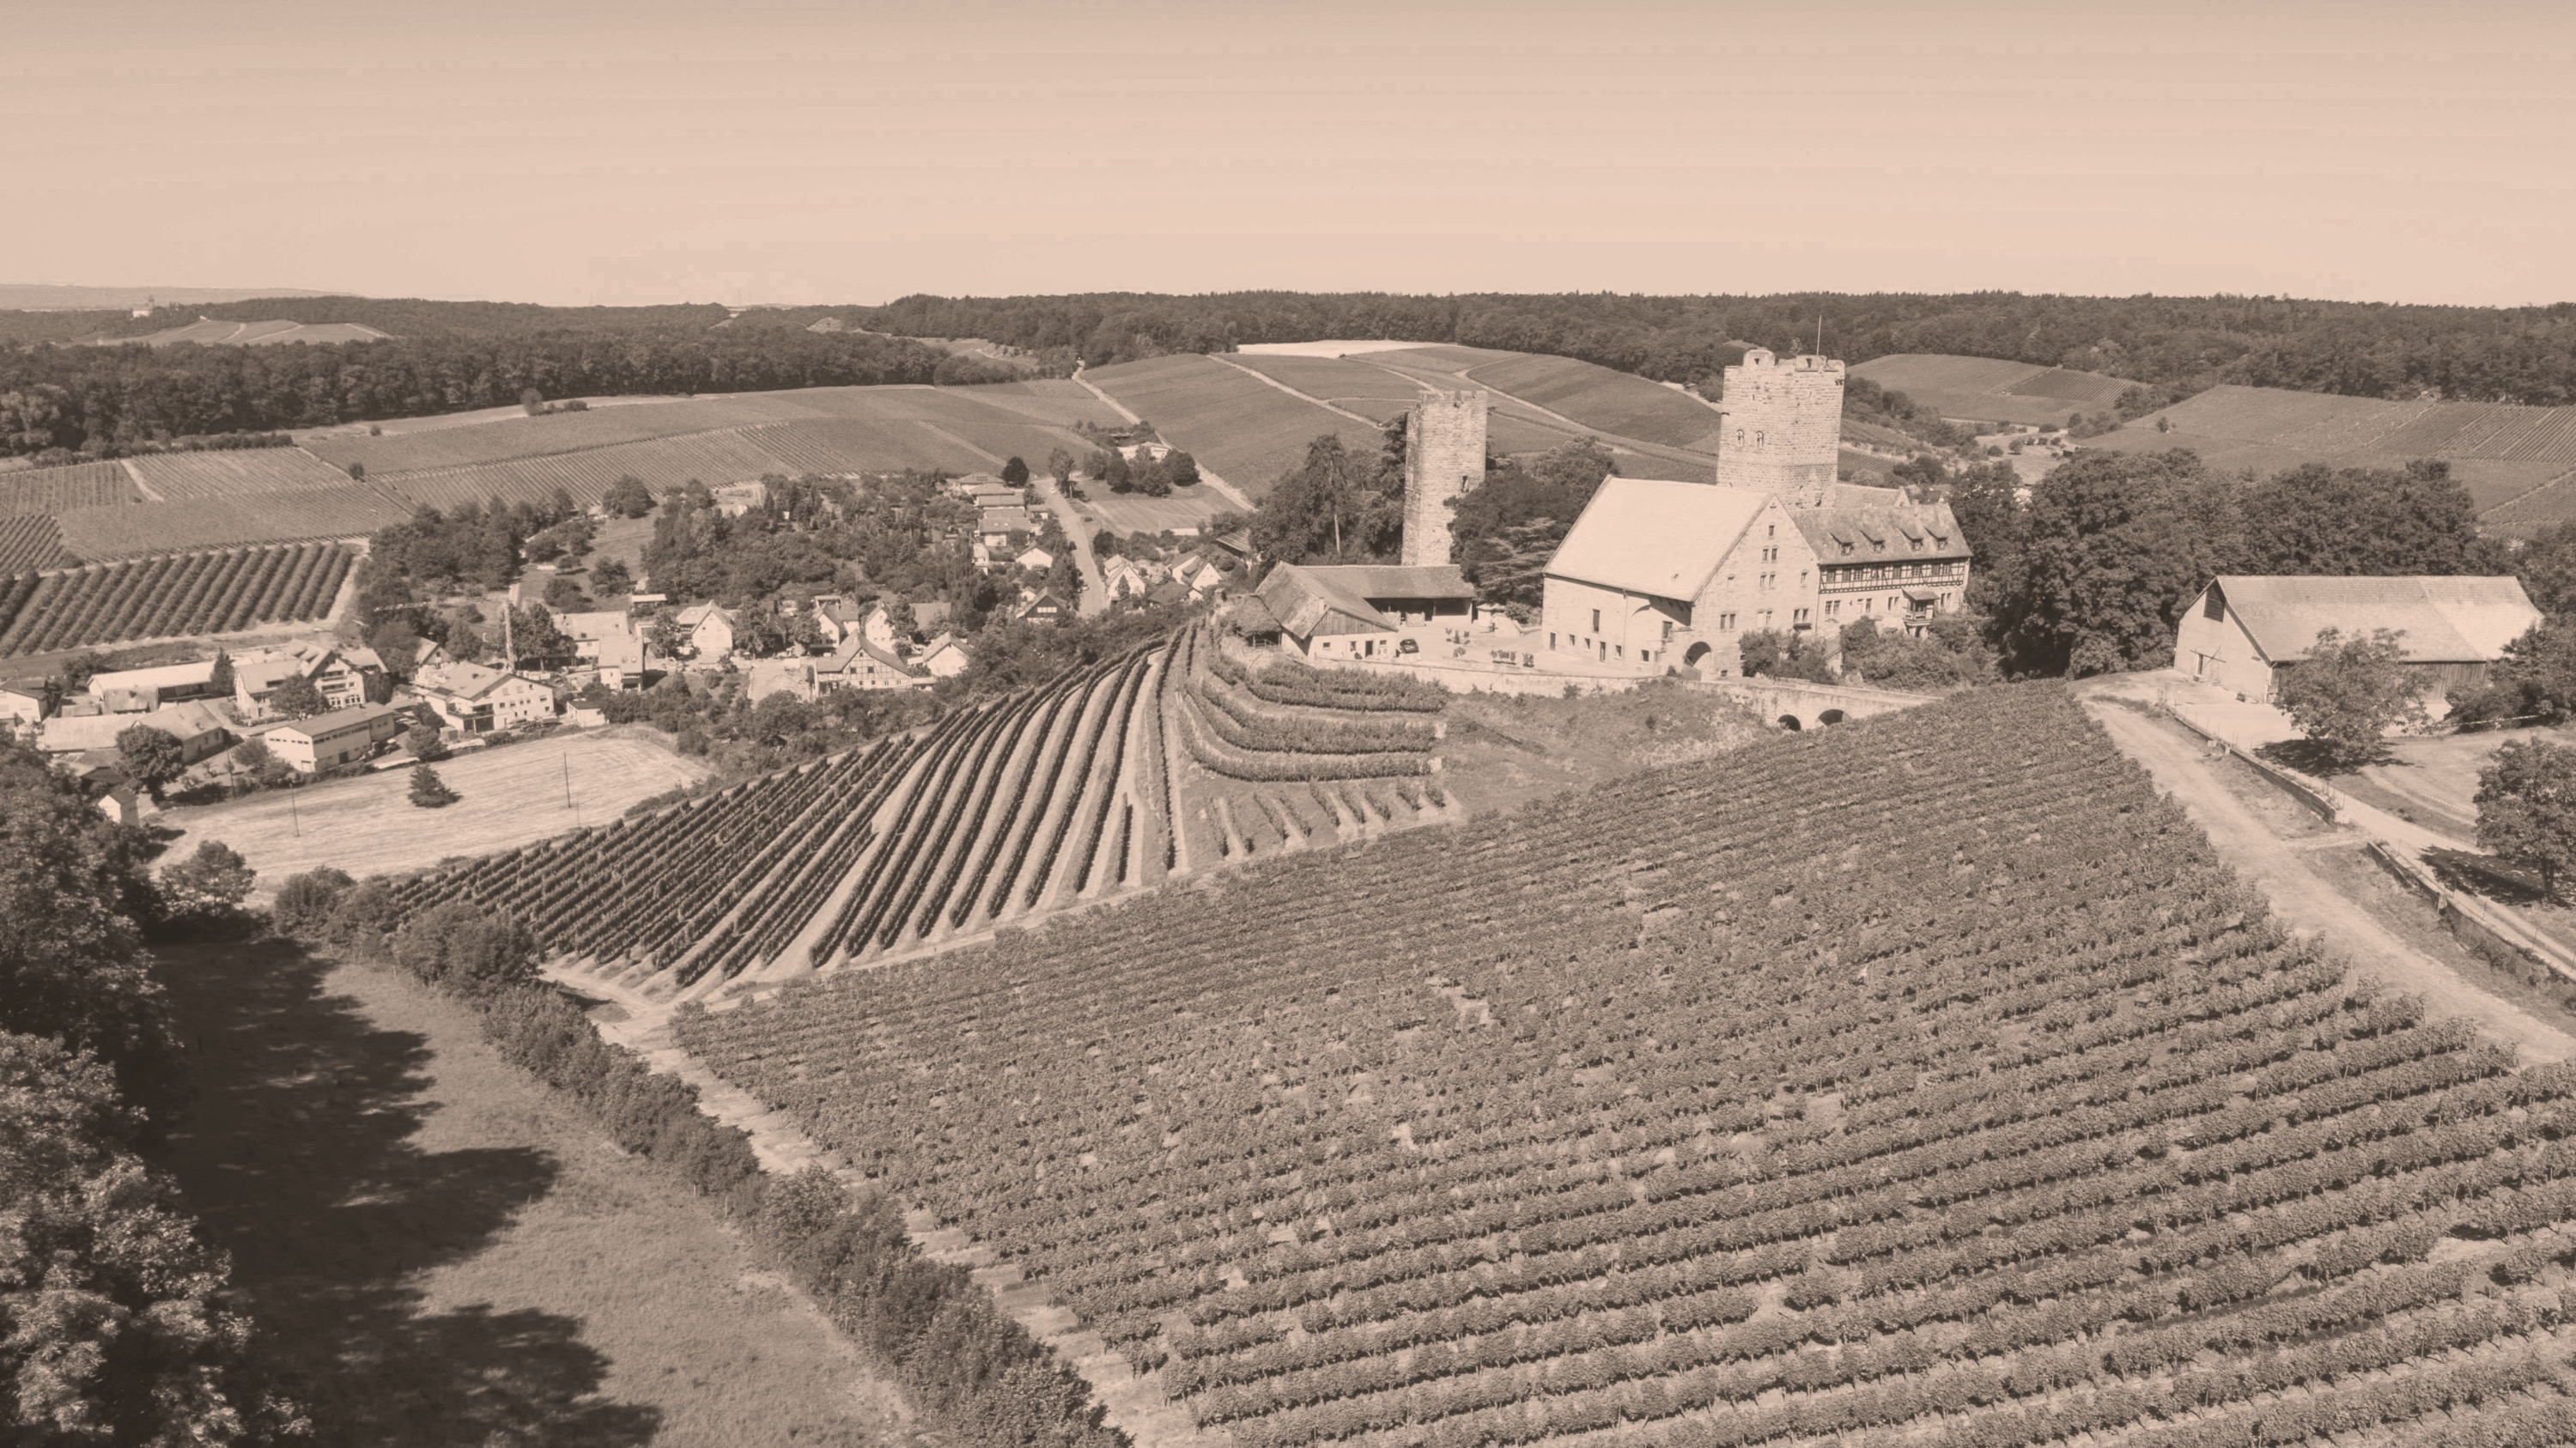 Weinberge in Neipperg